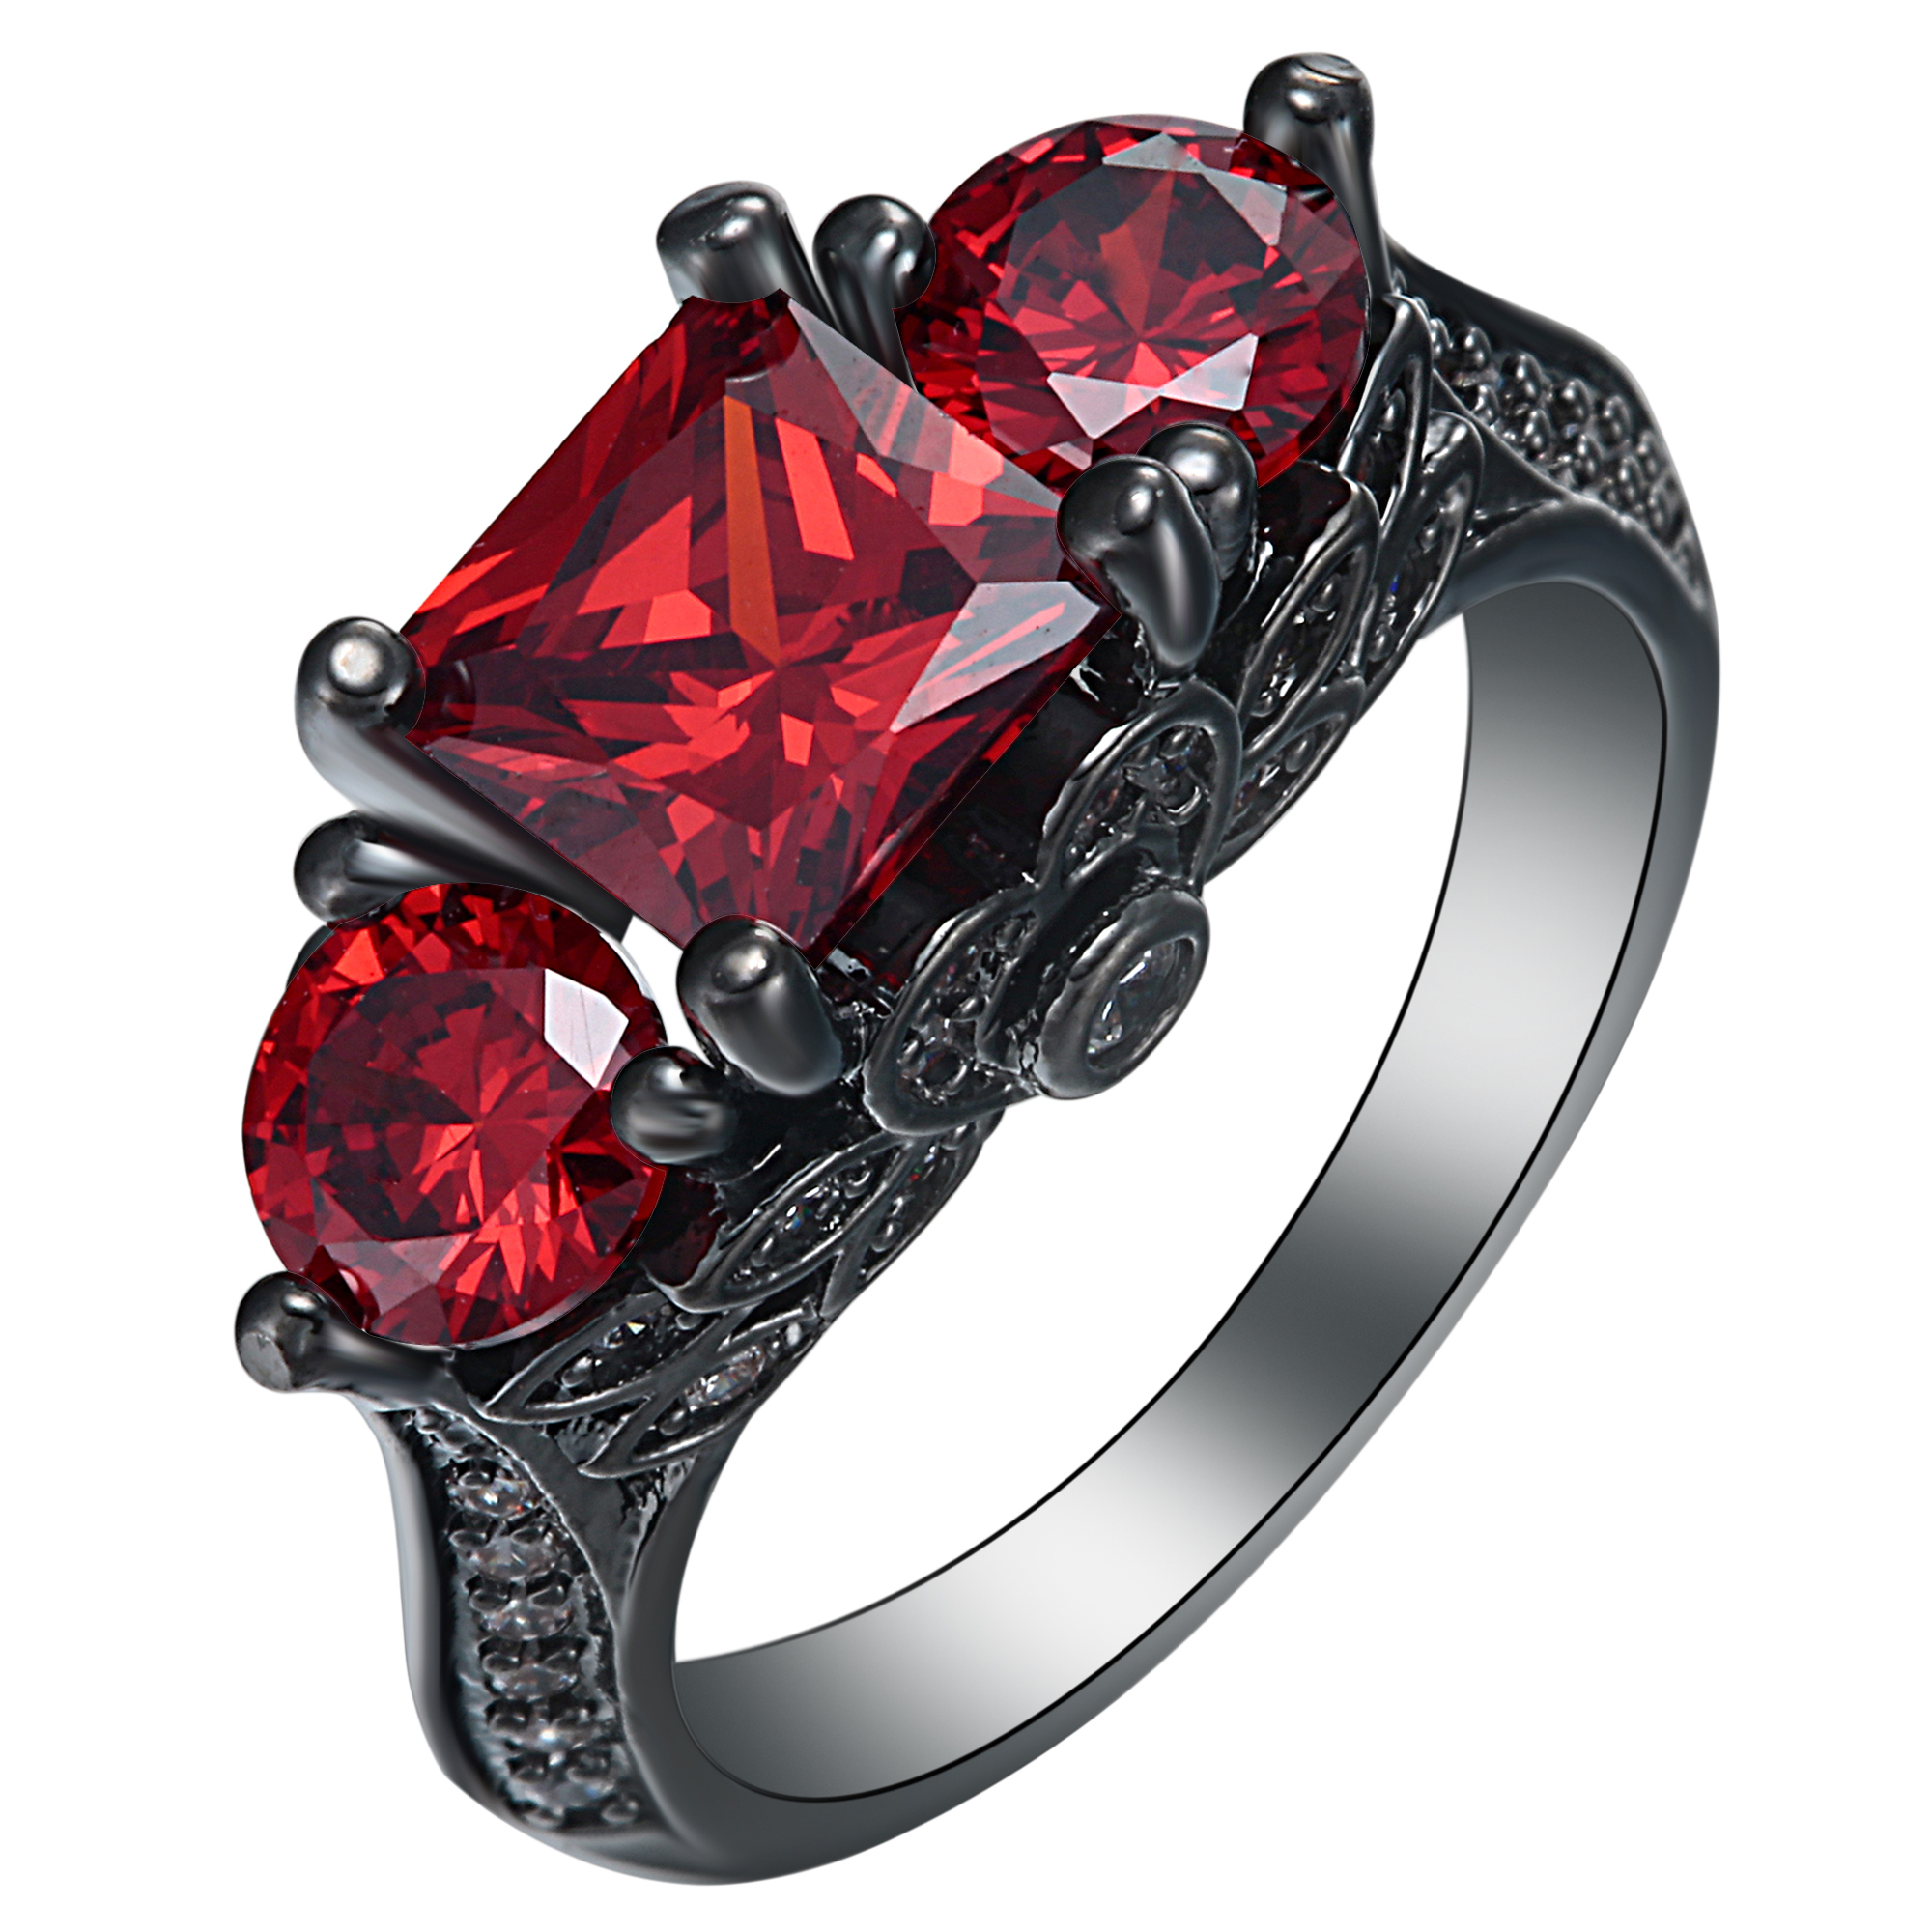 cut cubic sparkles cotia faux rings solitaire love carat diamond heart soliatire engagement ruby zirconia beloved shape promise gift products silver valentine ring cz day red